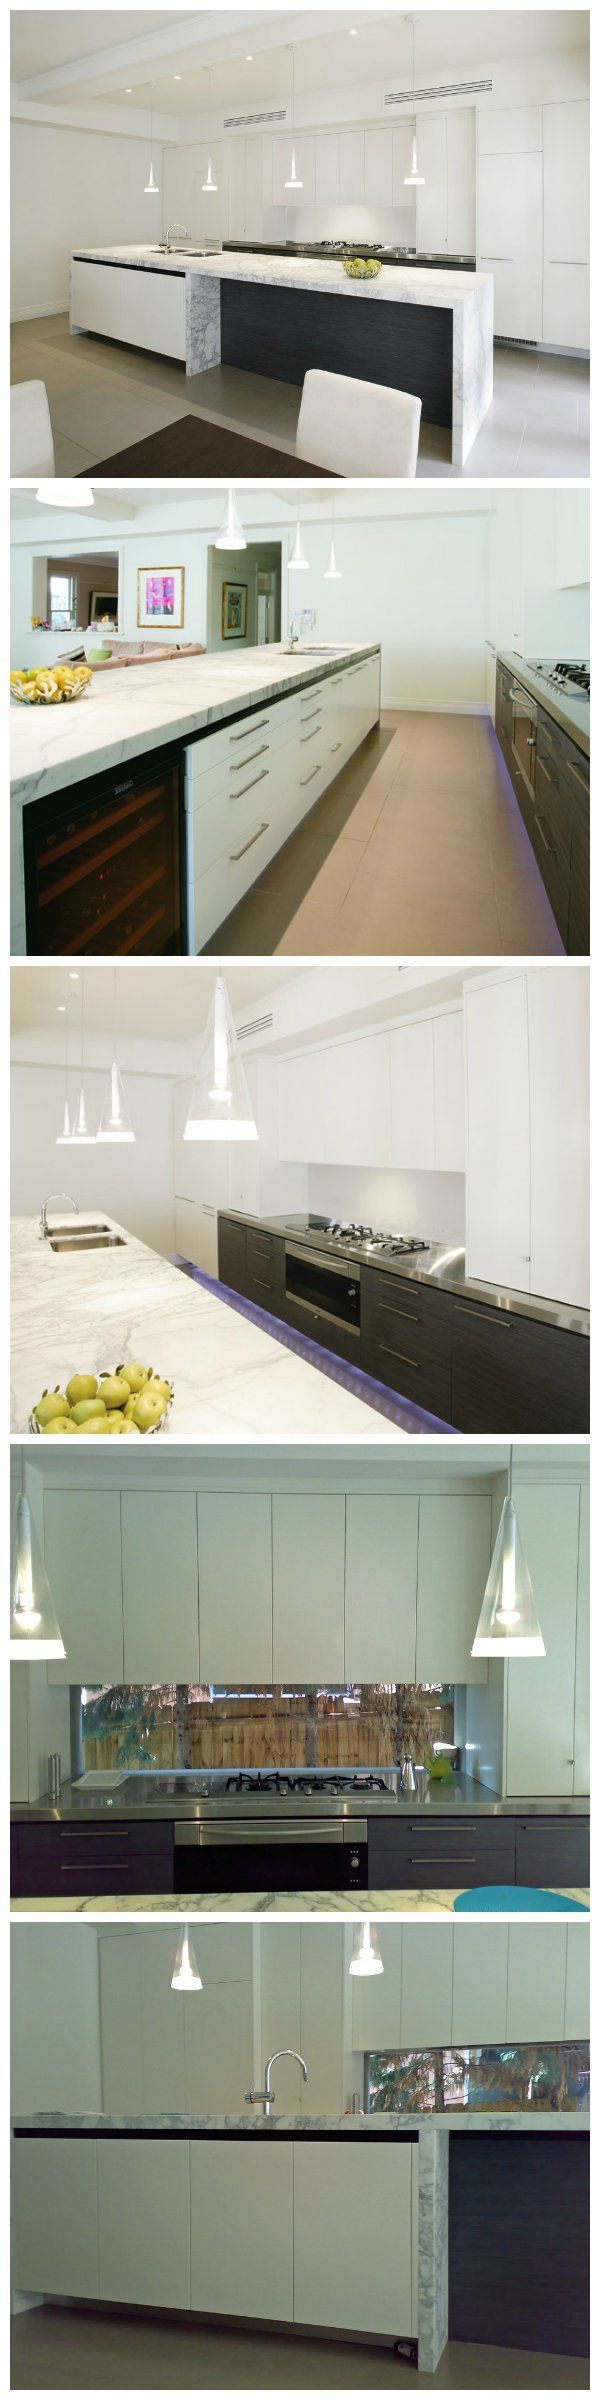 34 best U shaped kitchens images on Pinterest | Kitchens ...